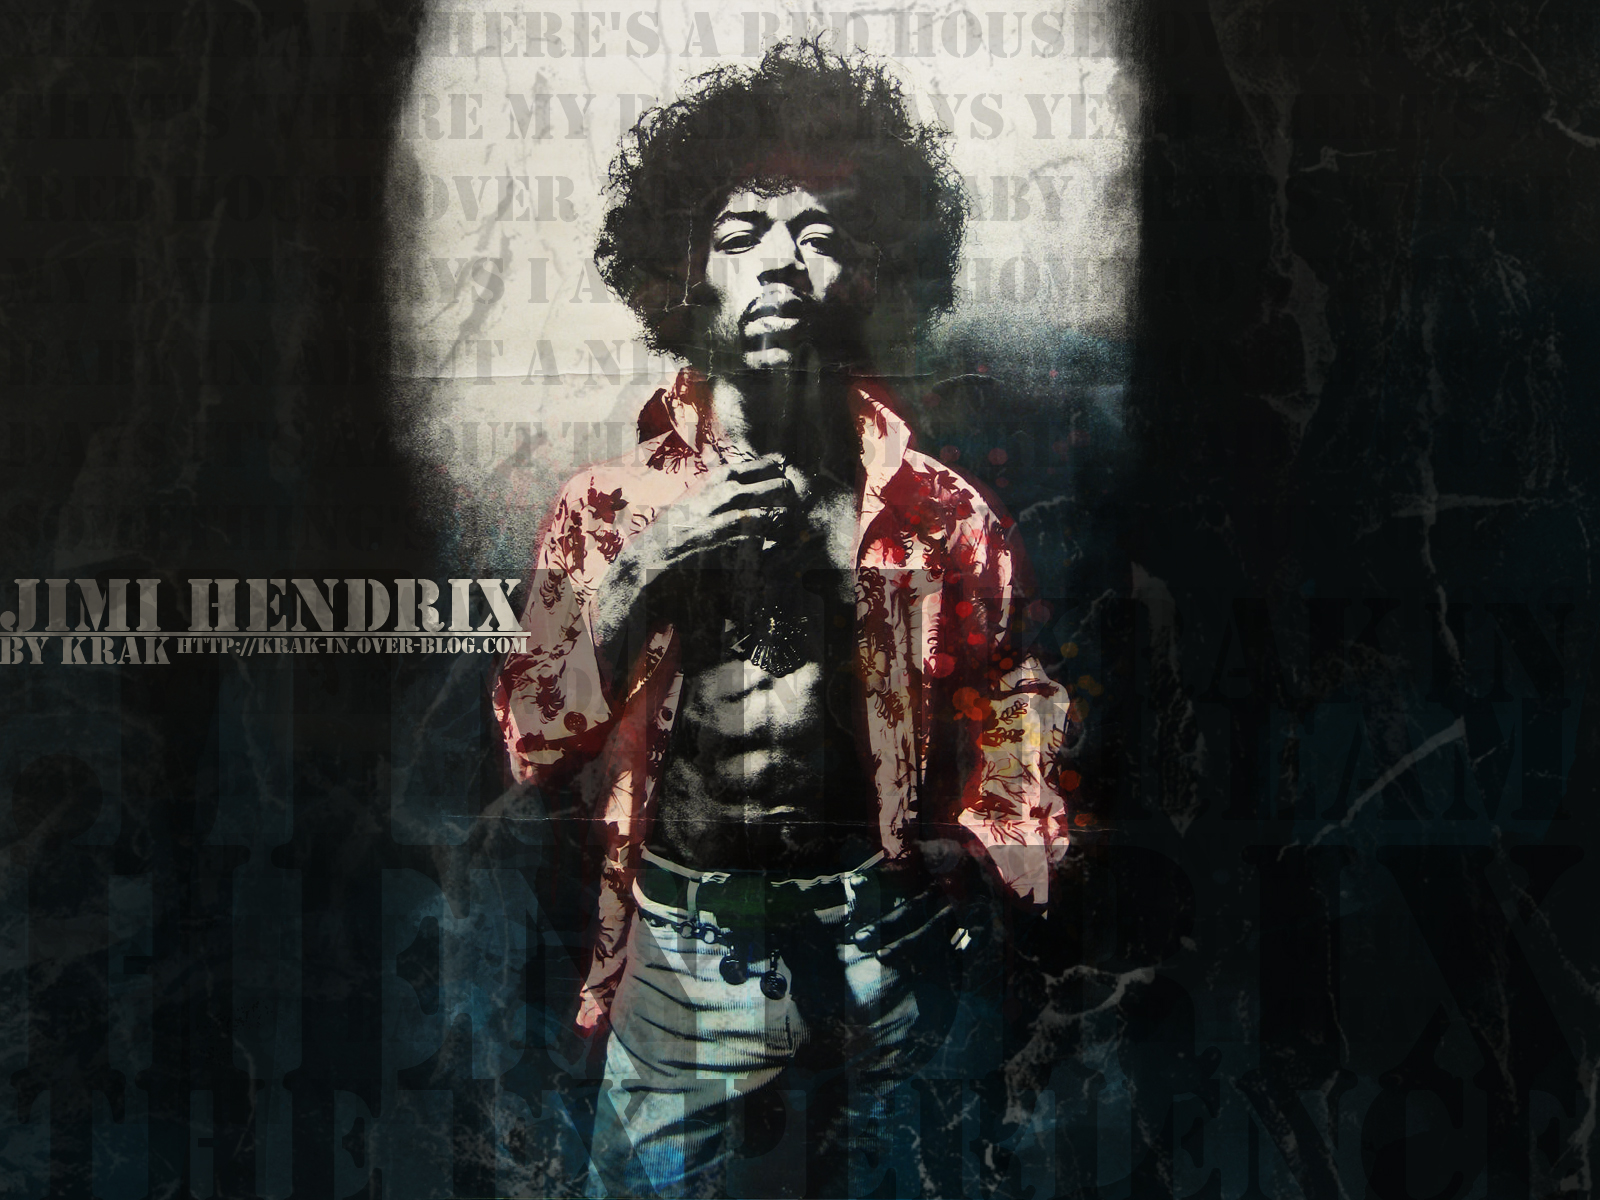 jimi hendrix wallpaper 10 - photo #47